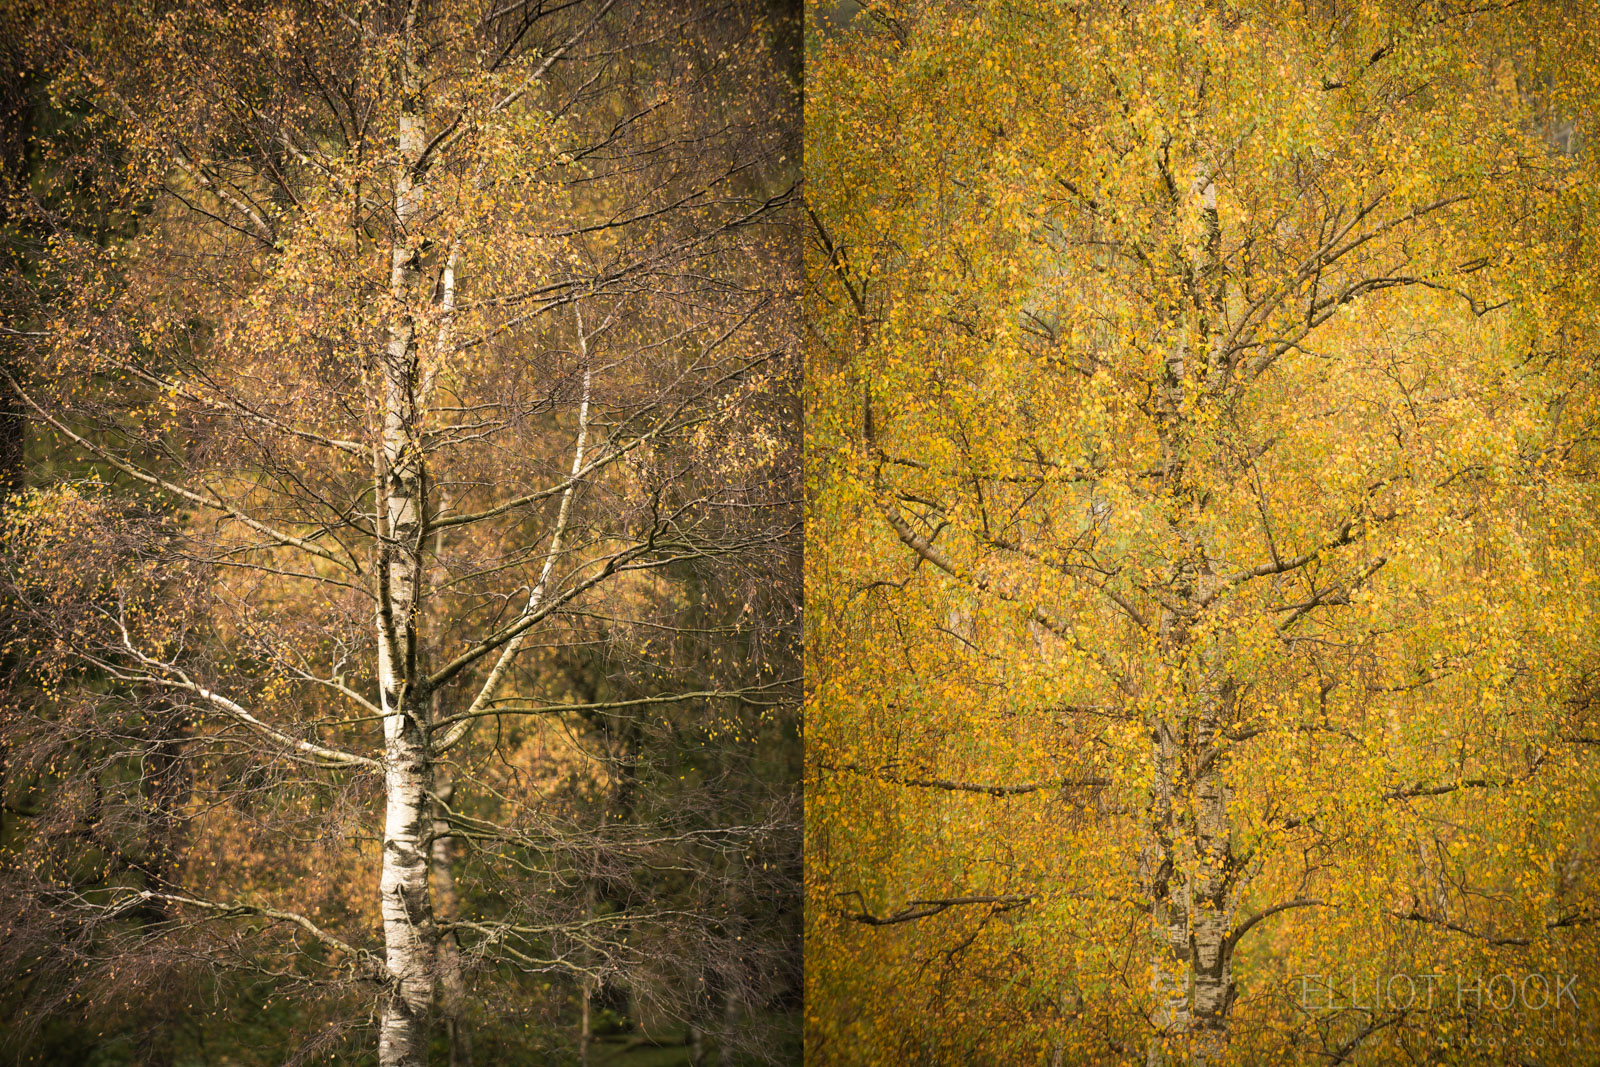 Contrasing silver birch trees in autumn